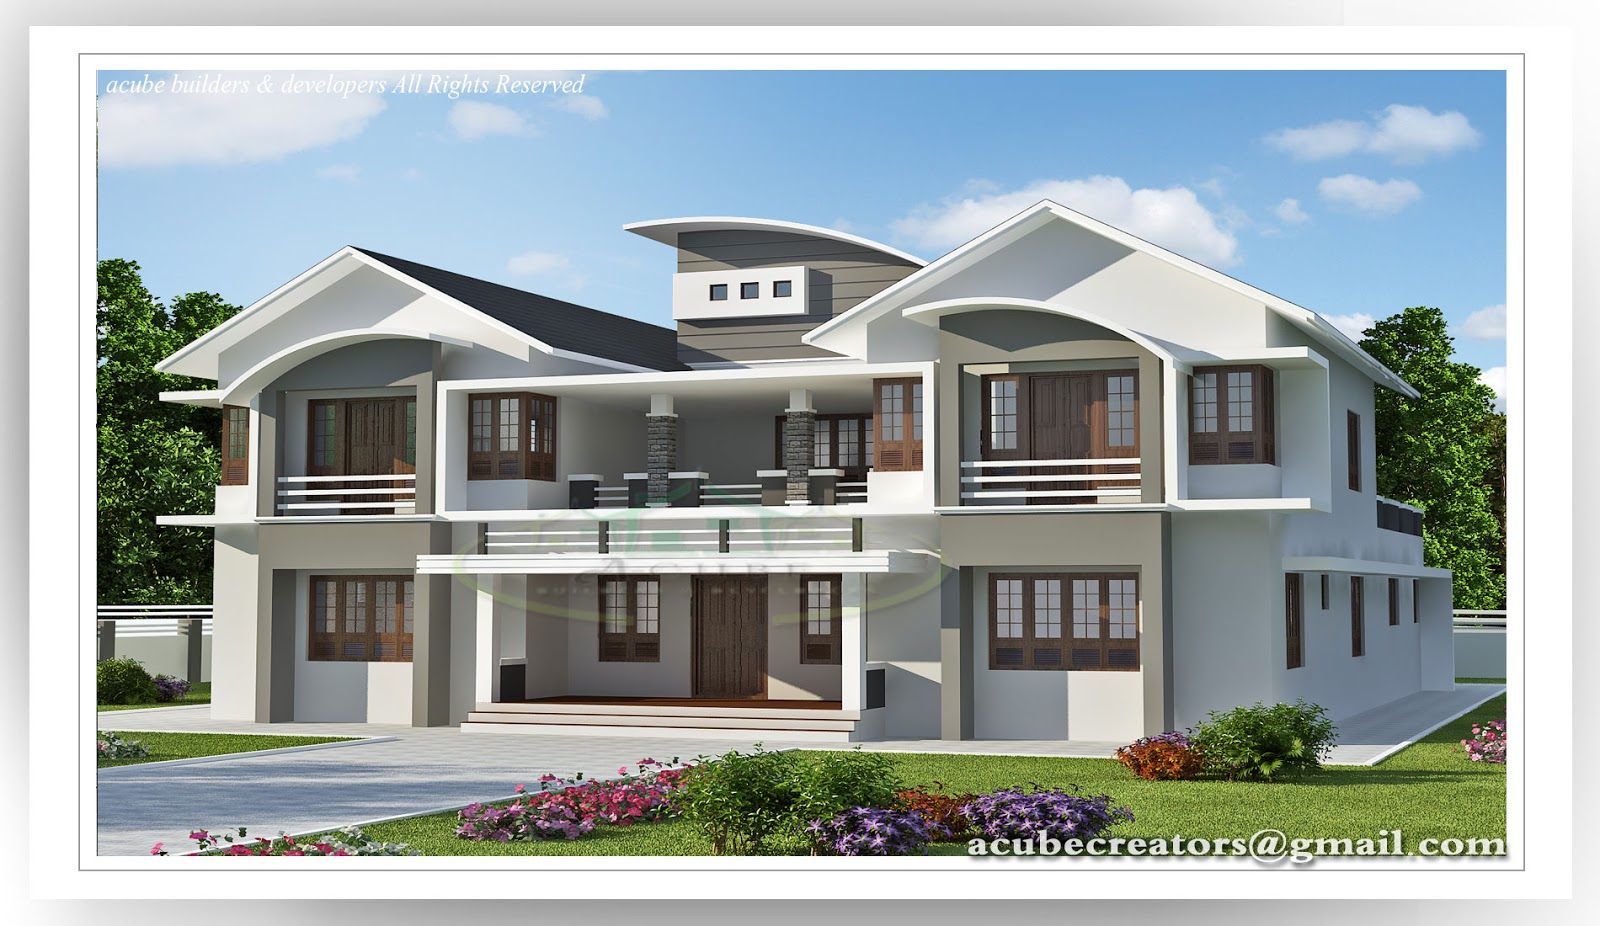 6 bedroom luxury villa design 5091 plan 149 for 7 bedroom house designs